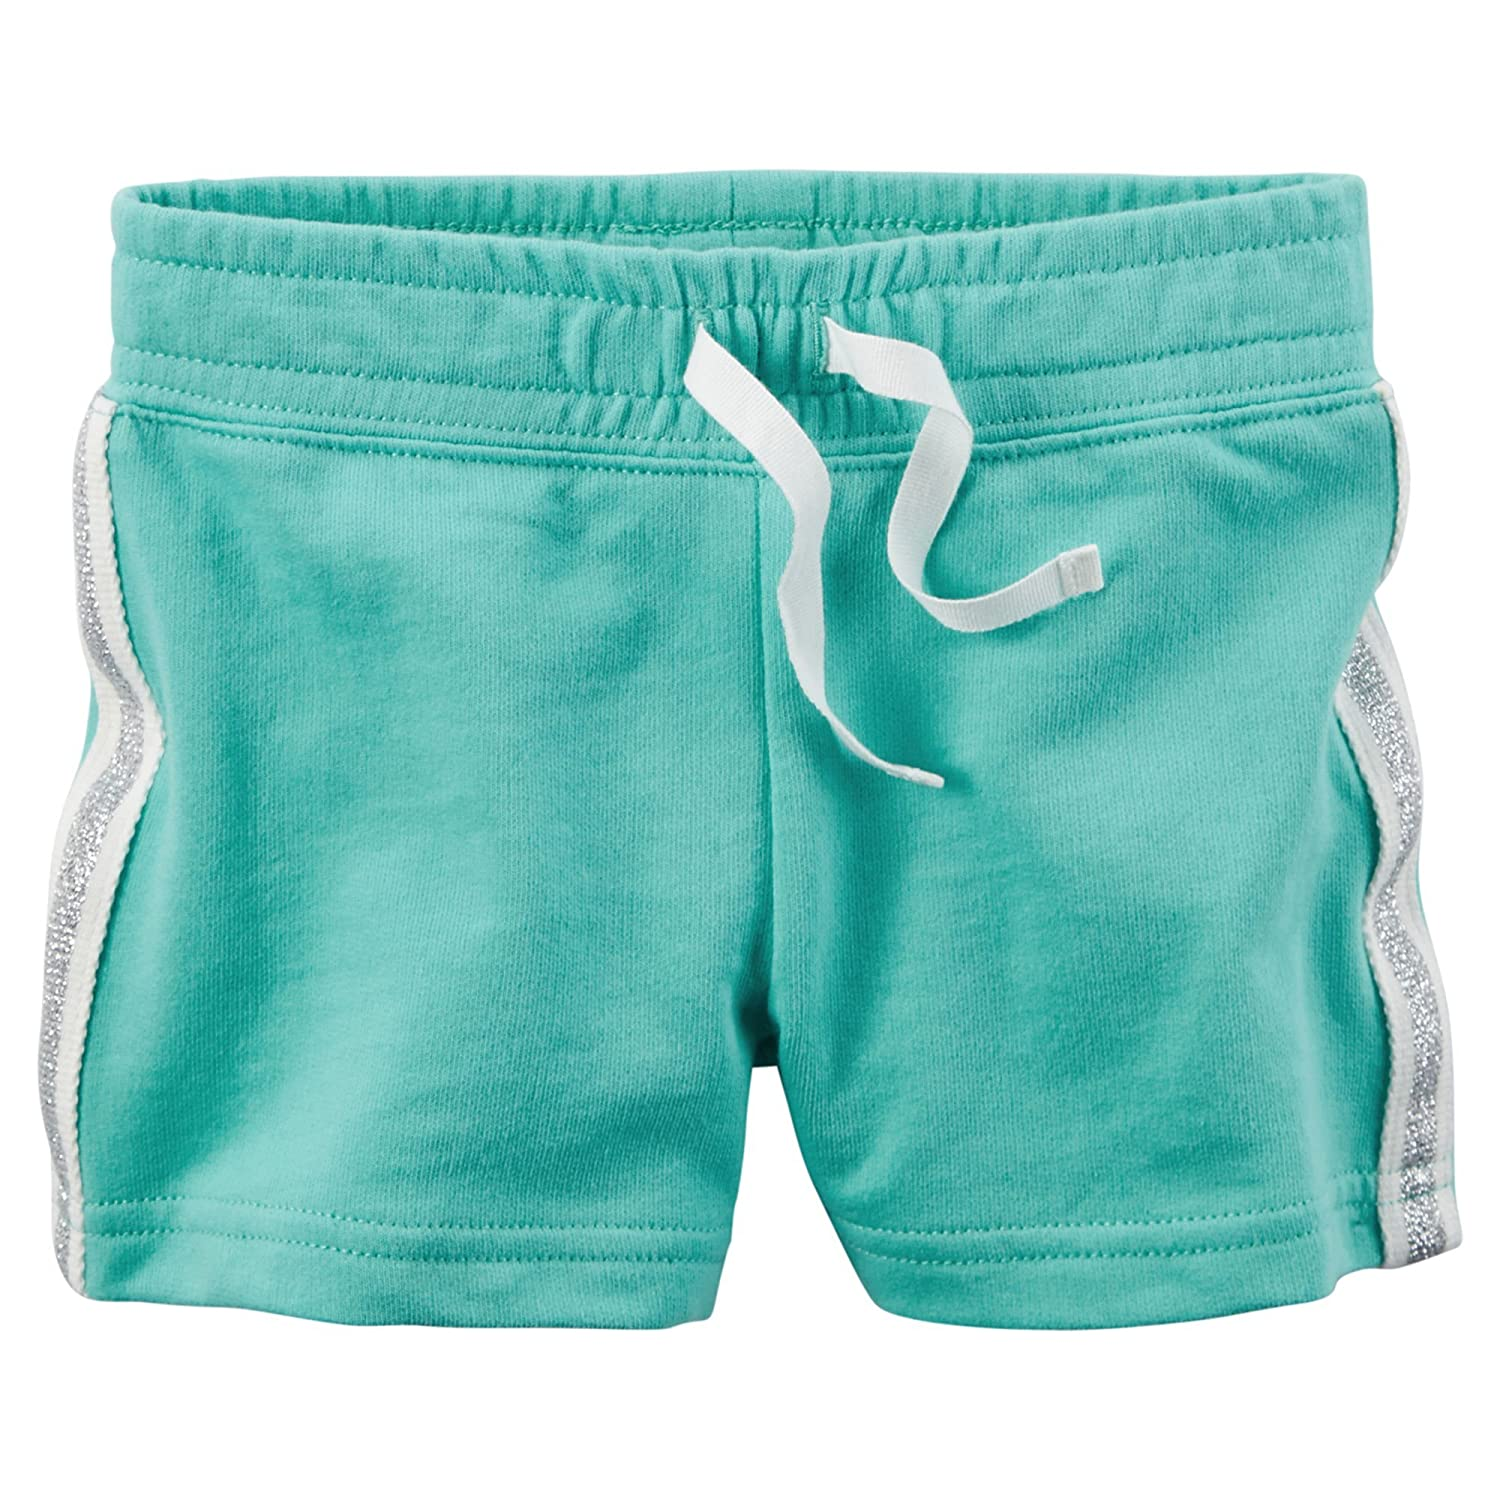 9 Months, Turquoise Carters Baby Girls French Terry Shorts